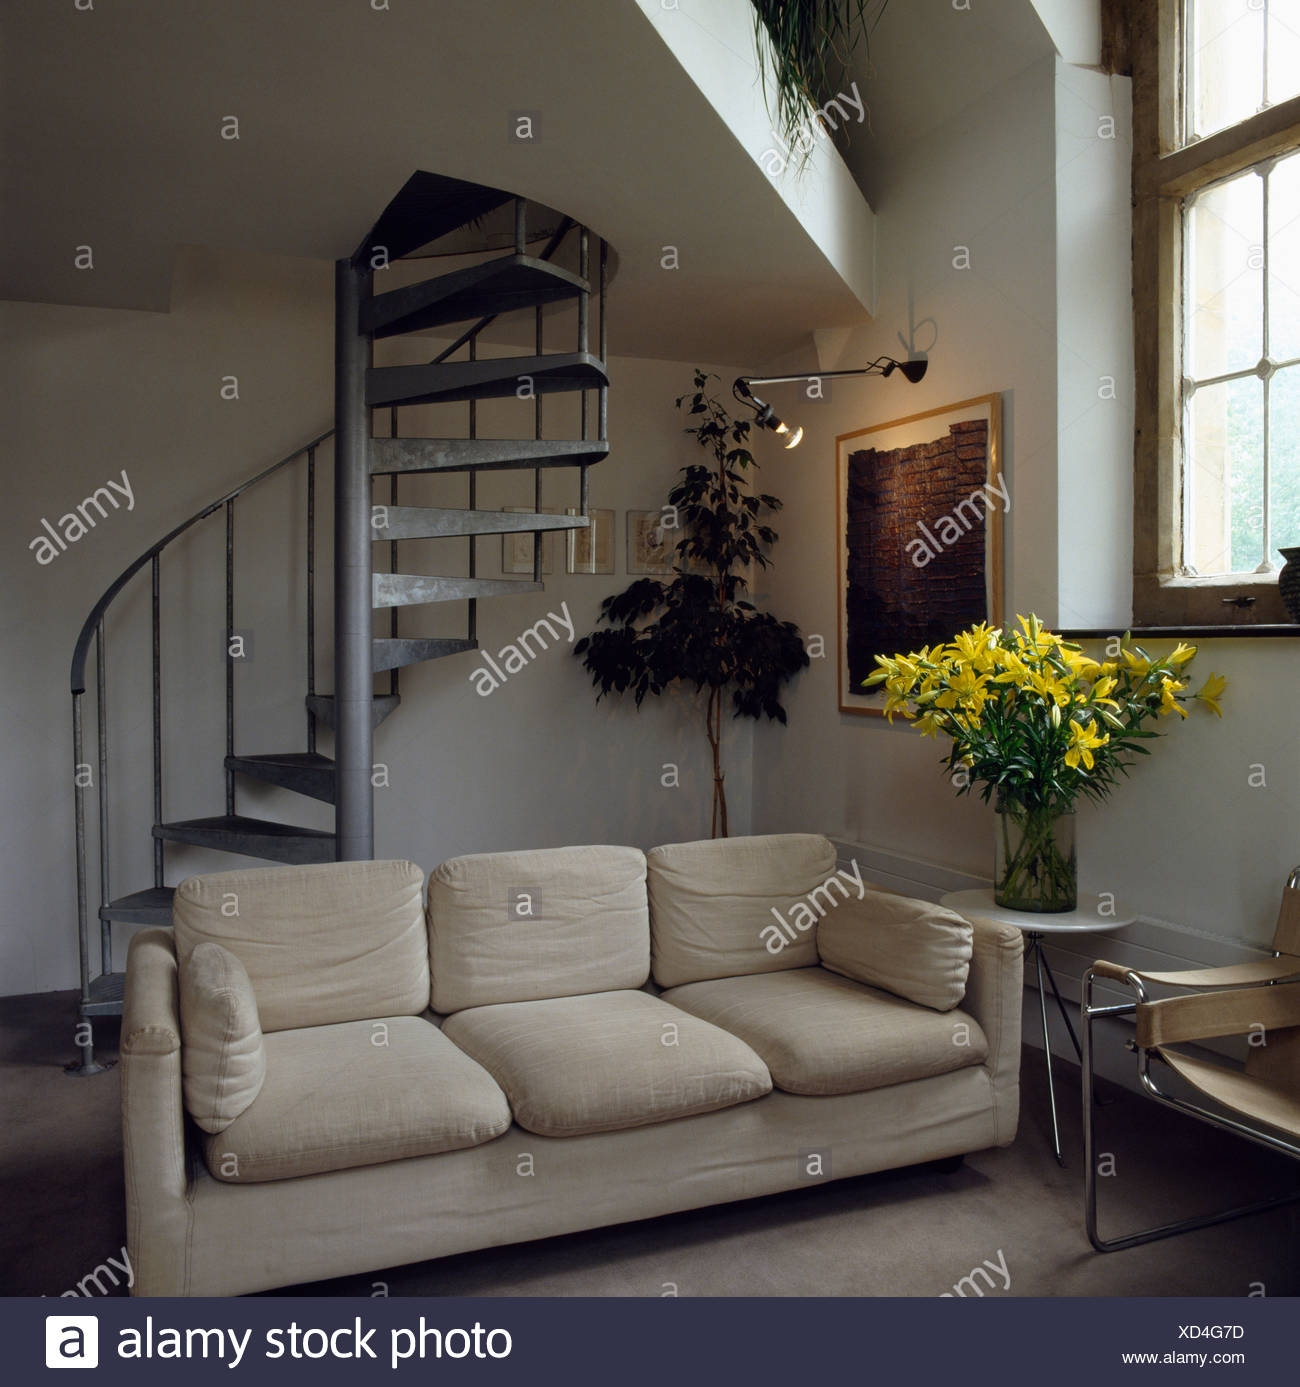 Modern Sofa In Attic Living Room With Spiral Staircase Stock Photo | Spiral Staircase To Attic Bedroom | Loft Bedroom | Tight Space | Design | Before And After | Attic Ladder